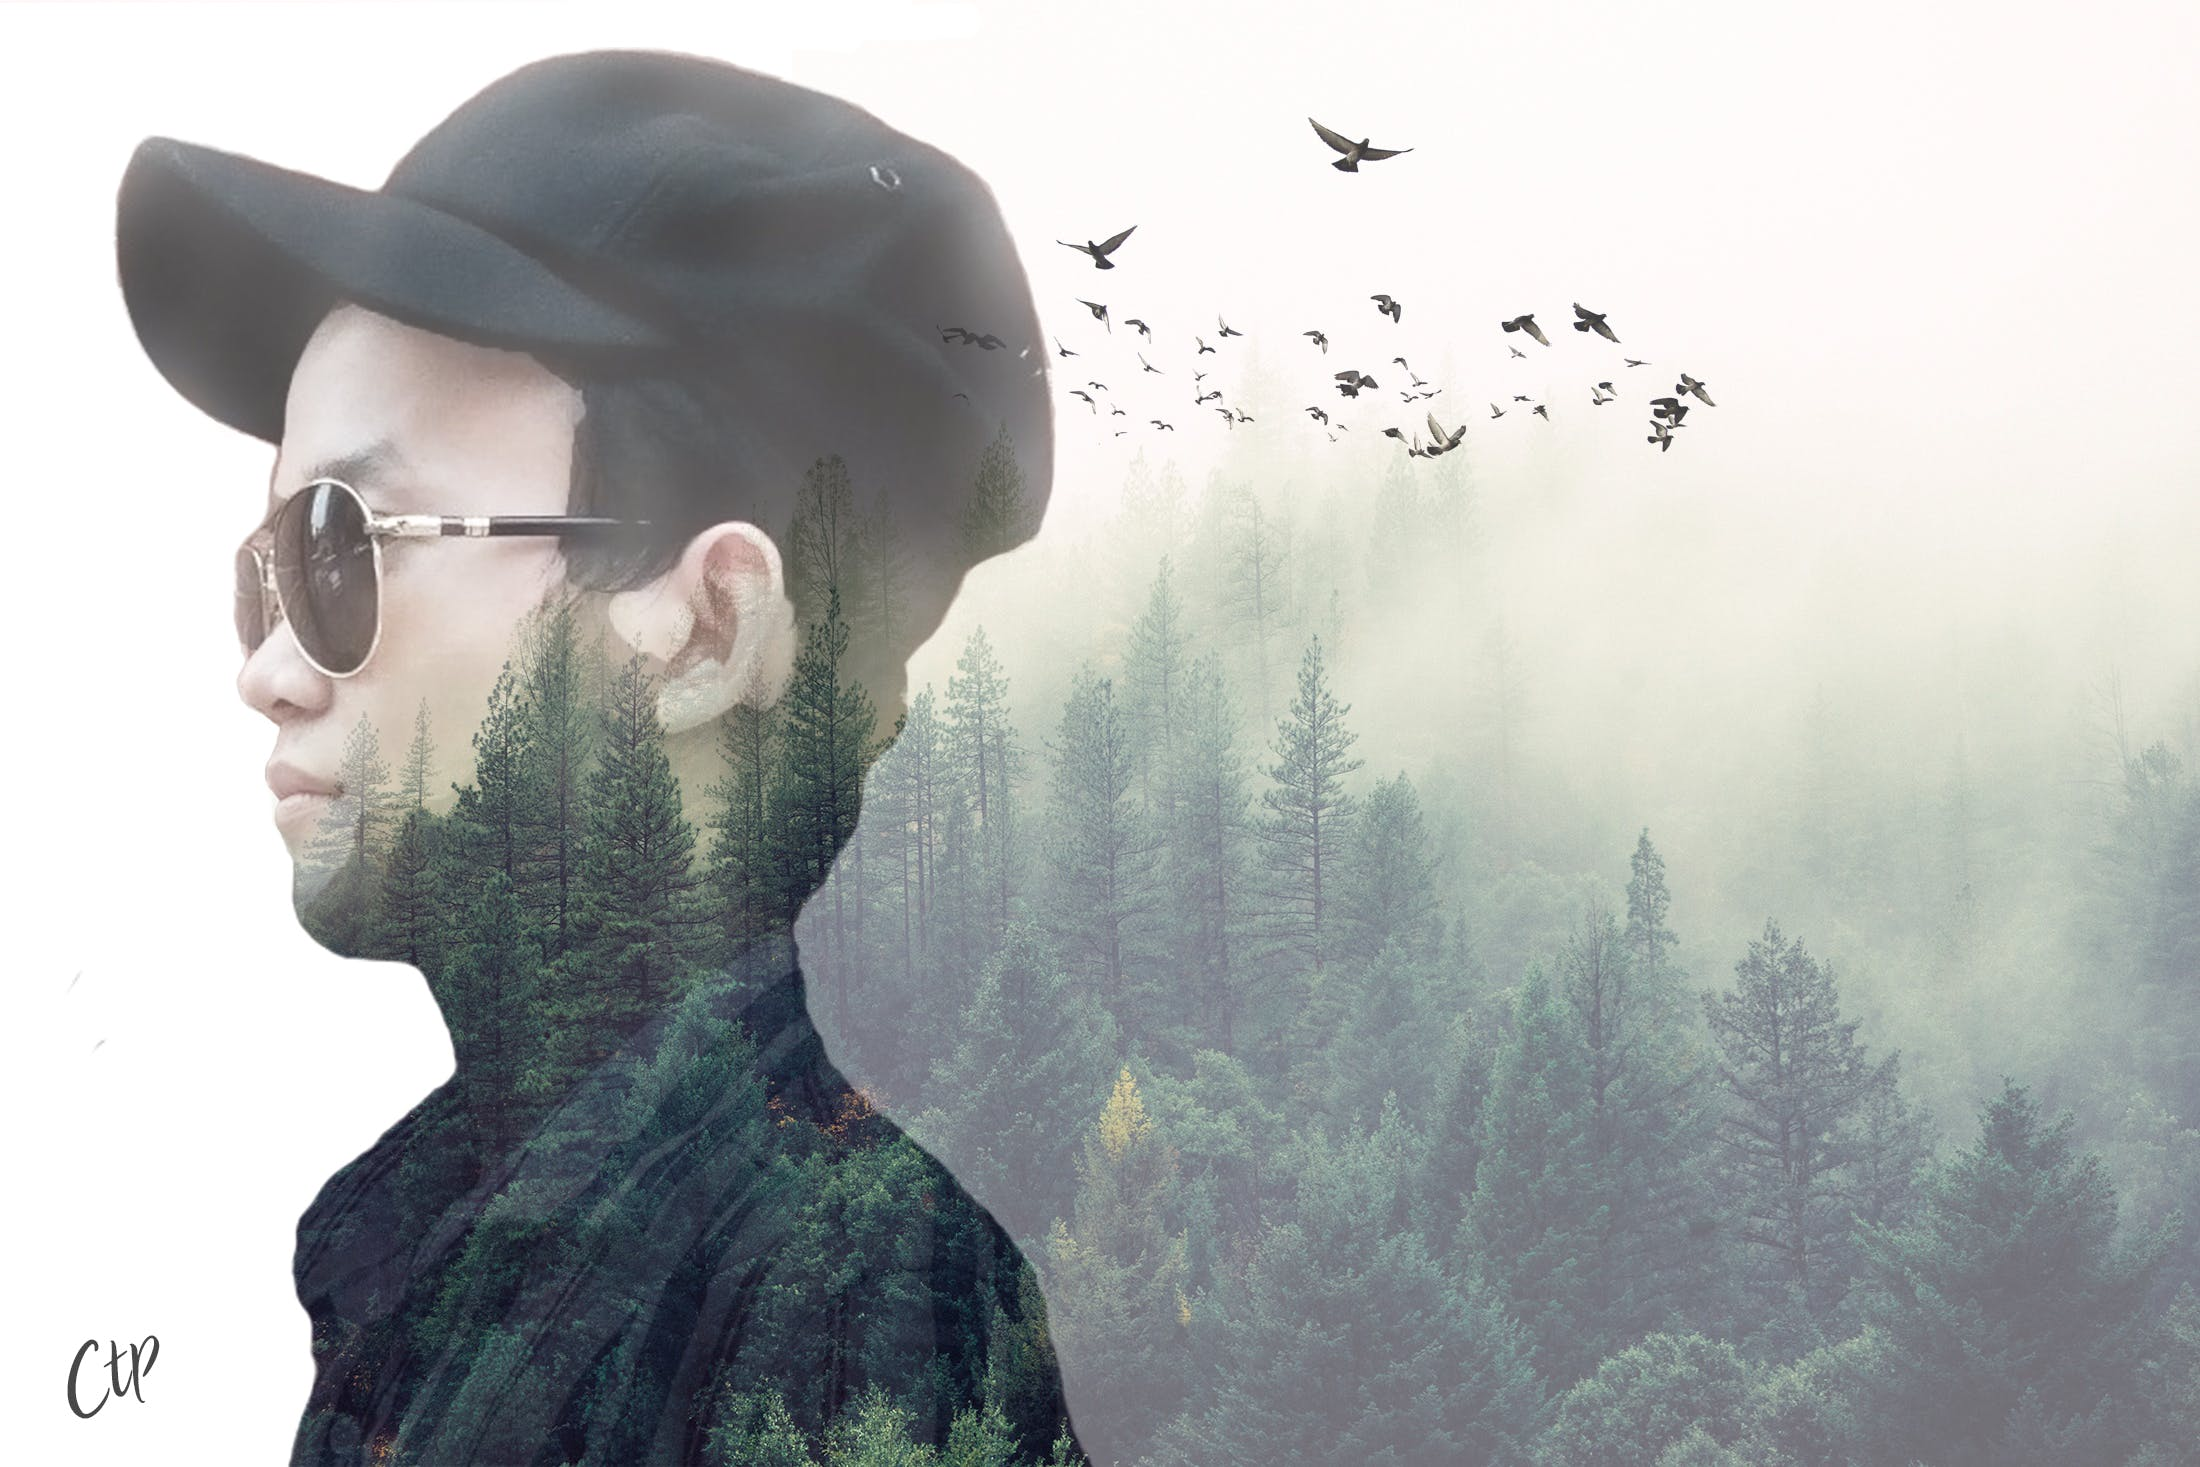 Free stock photo of chauthongphan double exposure